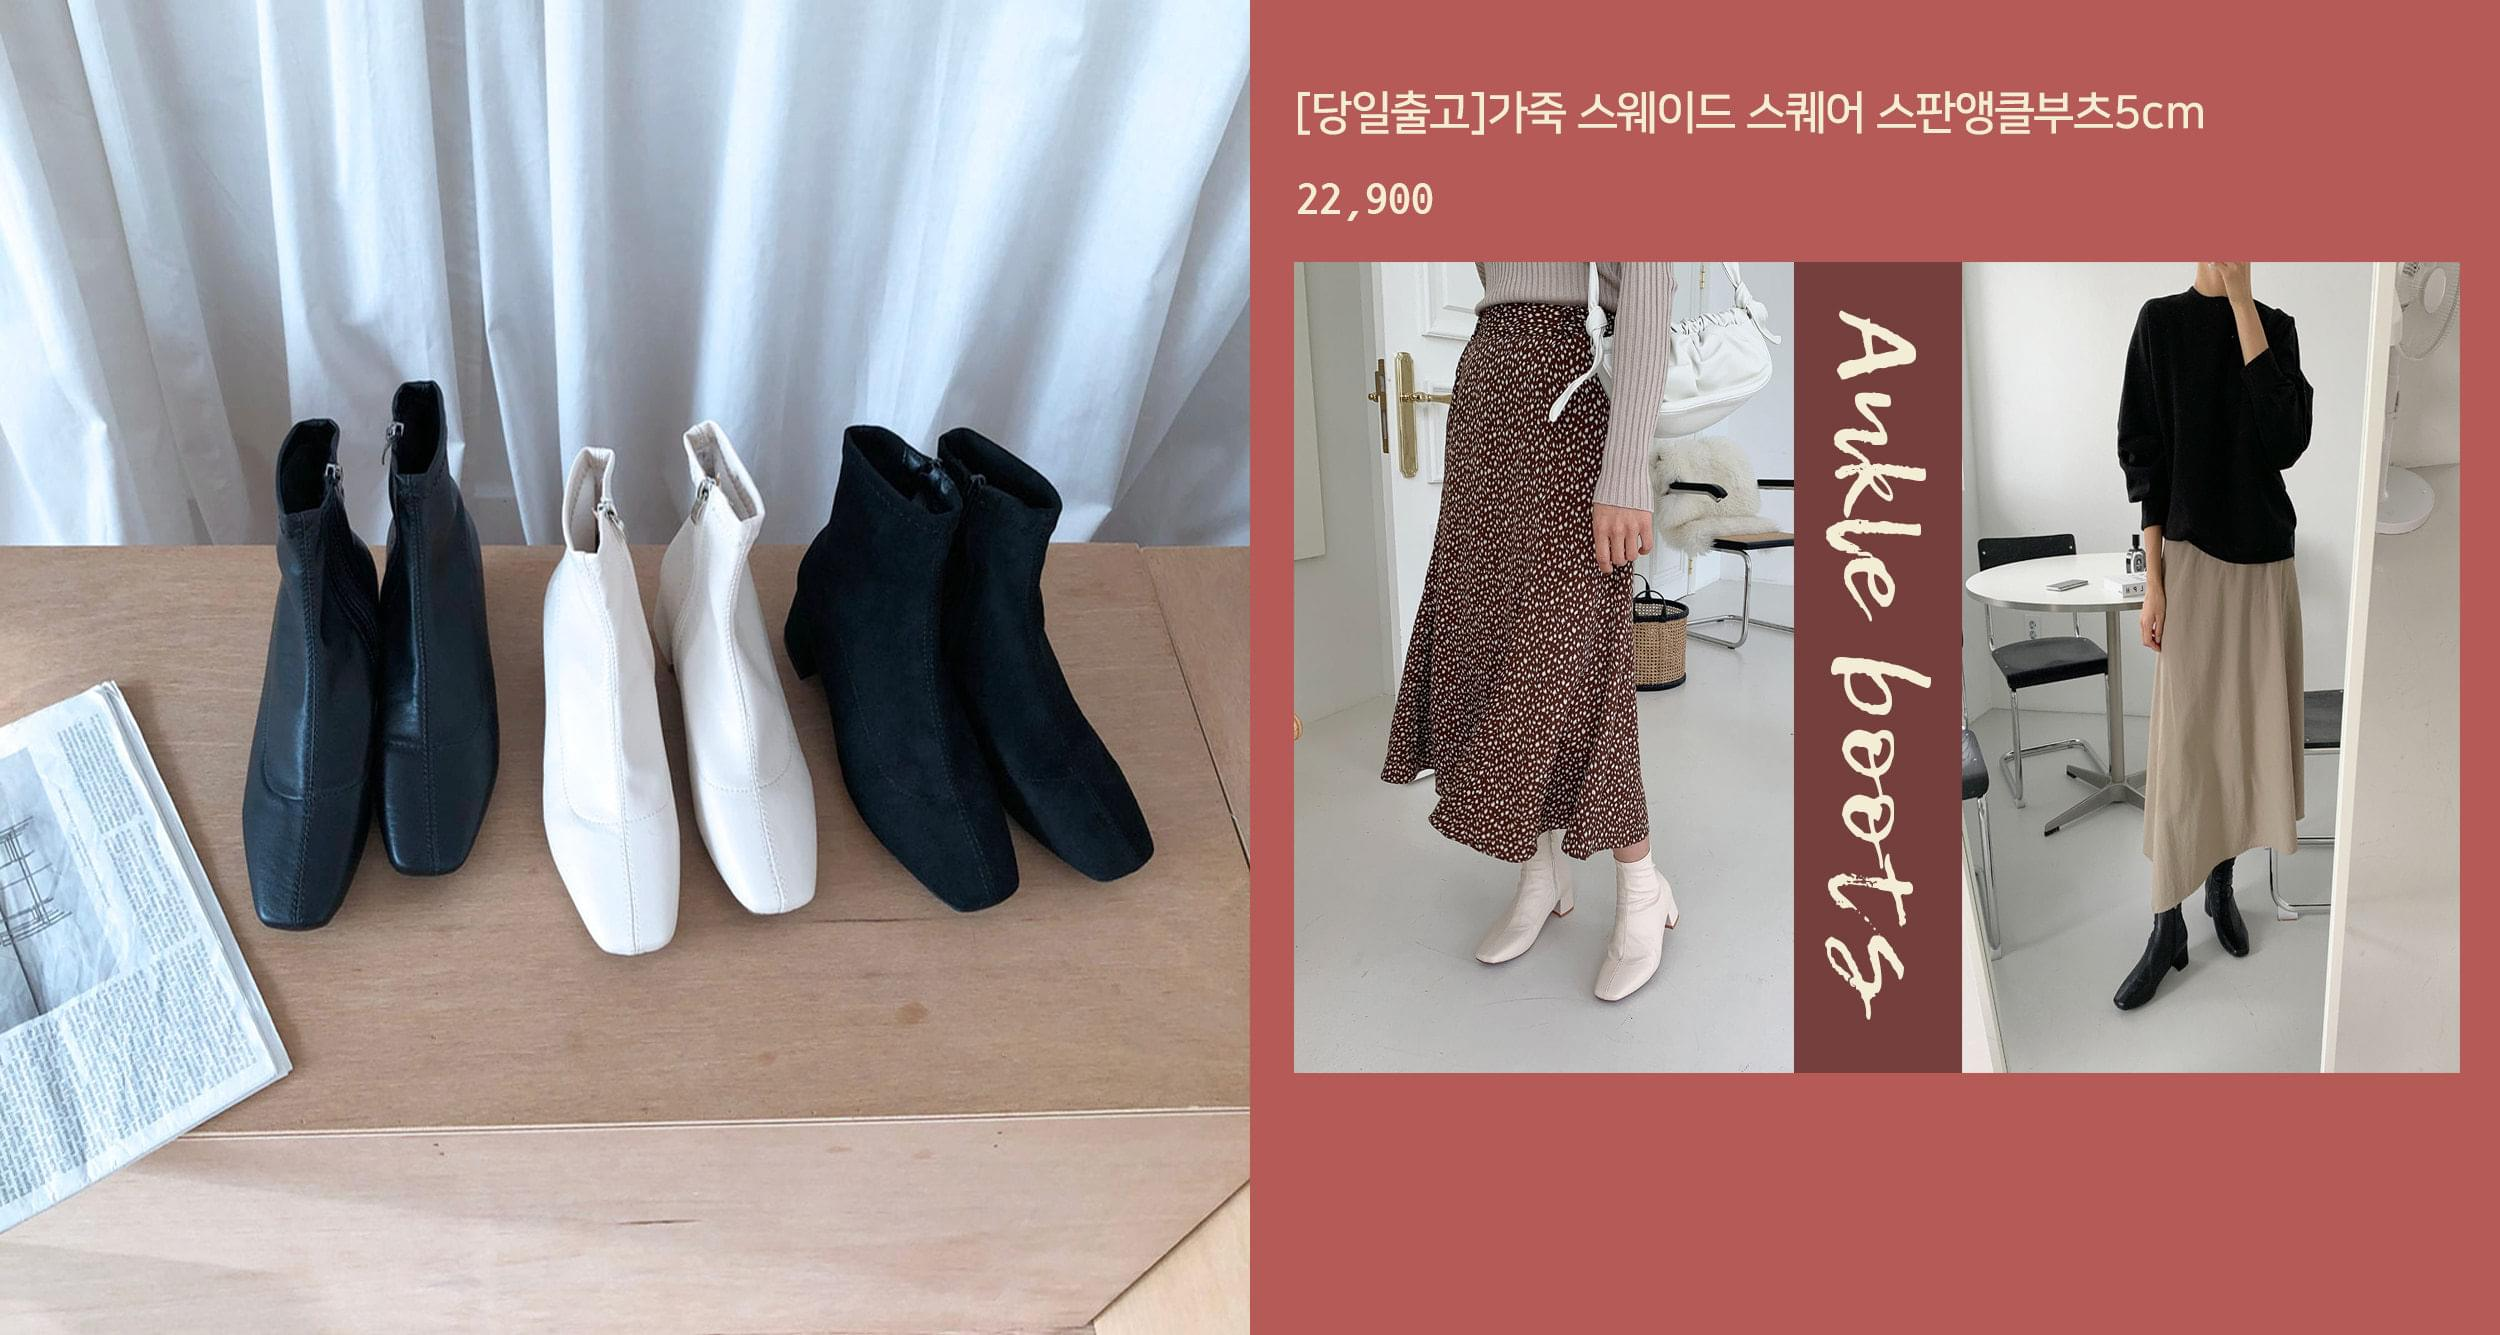 Leather Suede Square Span Ankle Boots 5cm